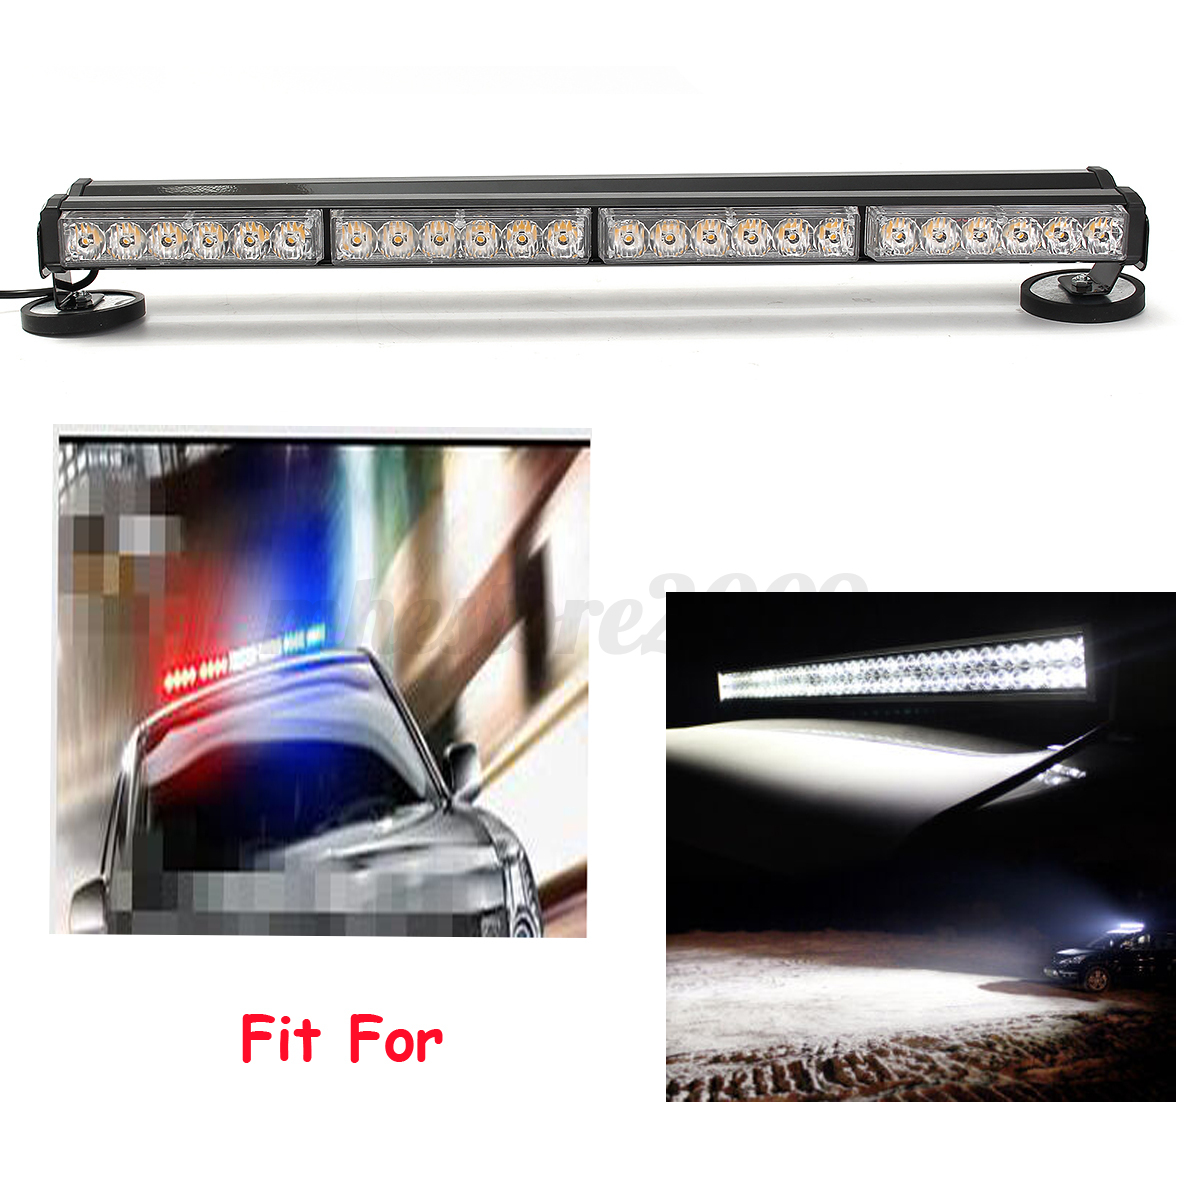 144w led work light bar beacon tow truck emergency warning. Black Bedroom Furniture Sets. Home Design Ideas